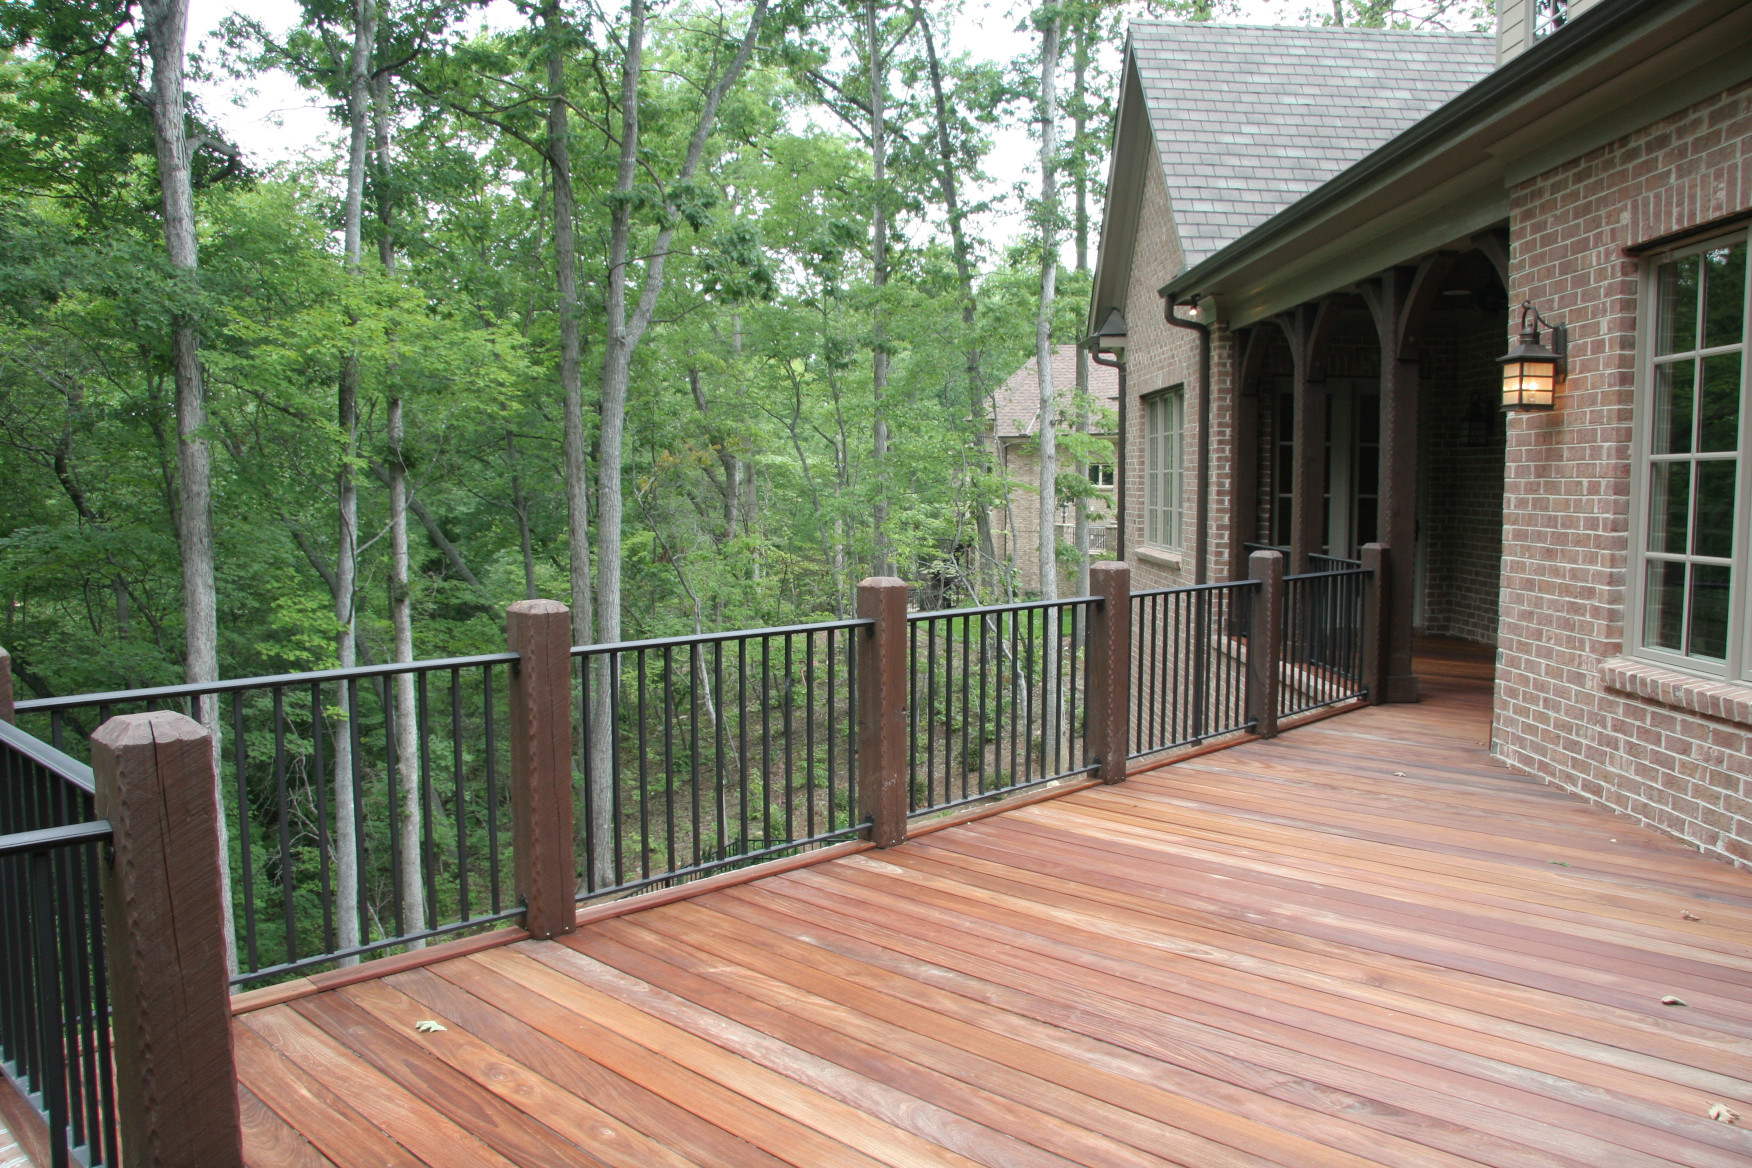 The wood railing posts on this porch have historical textures.